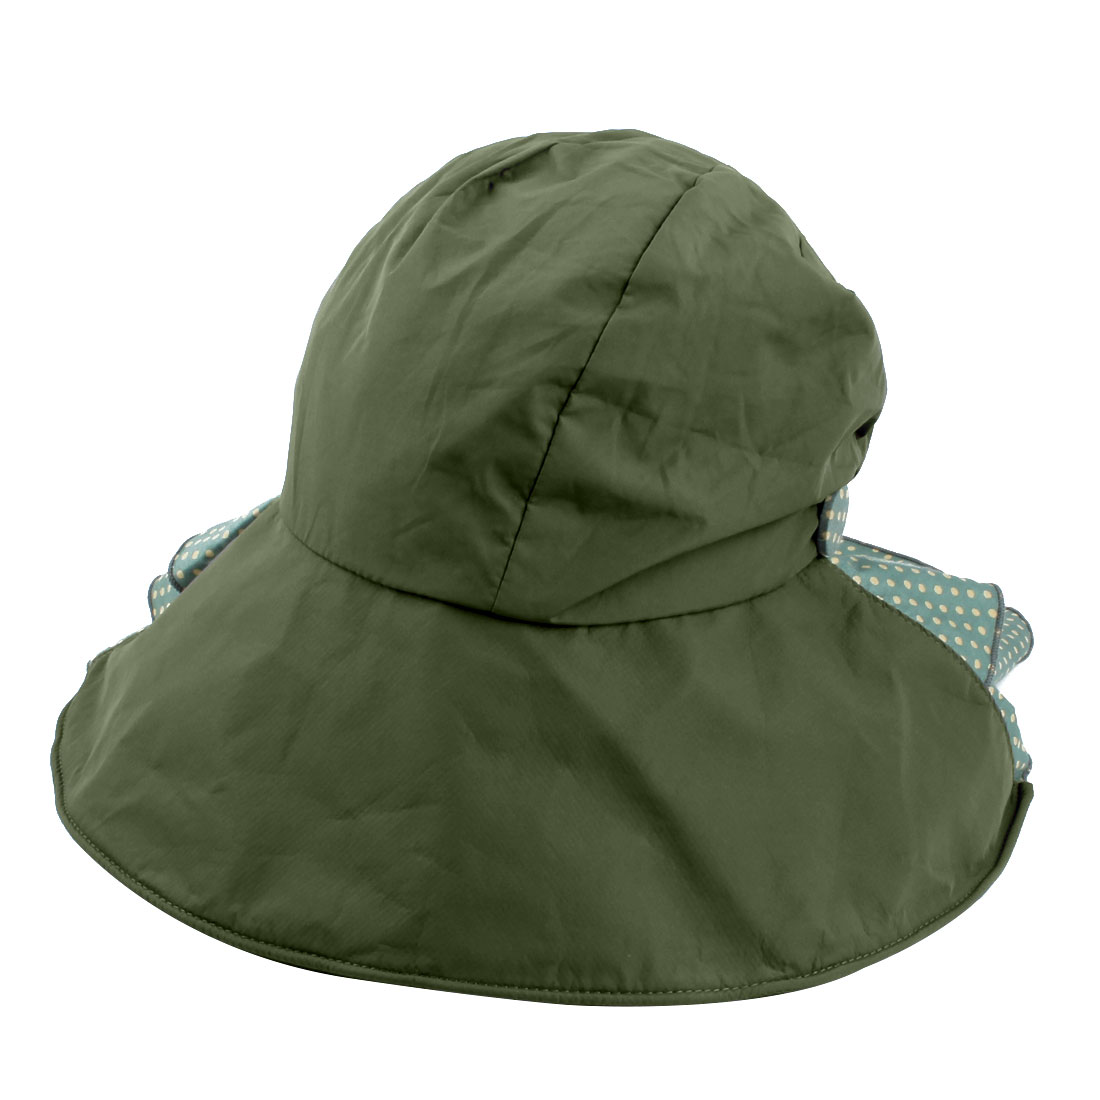 Woman Outdoor Travel Cotton Blends Dots Pattern Floppy Beach Cap Sun Visor Hat Army Green